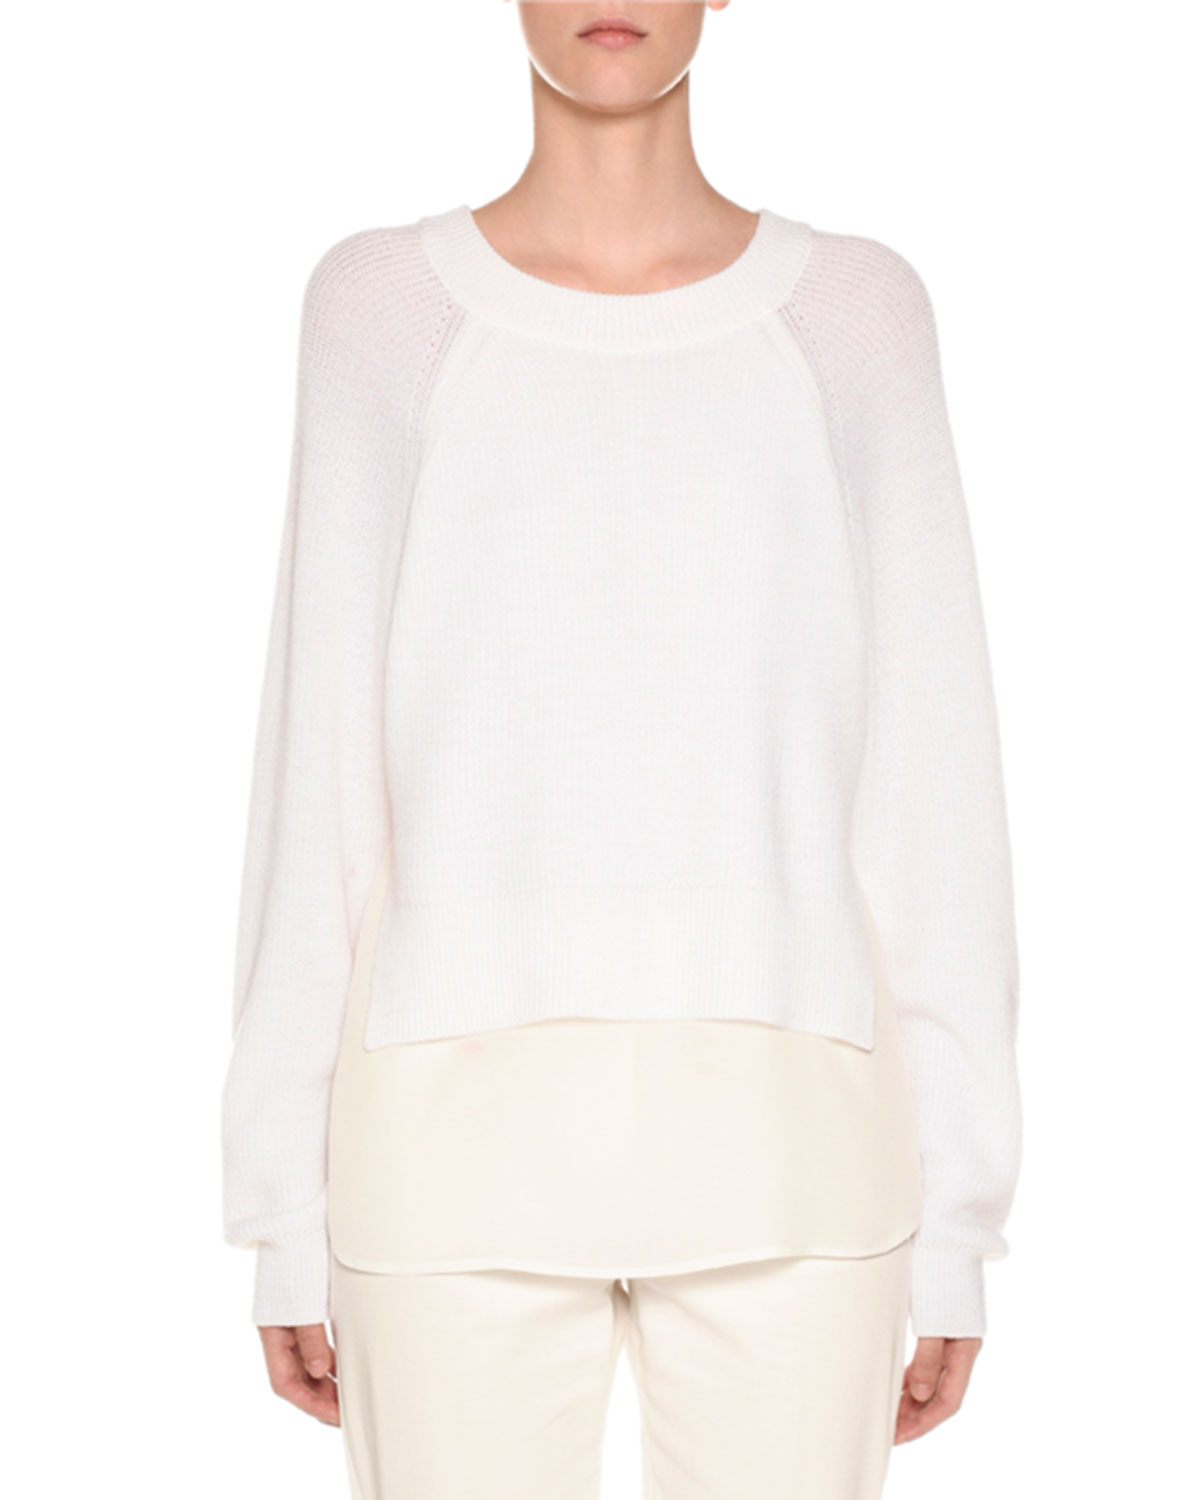 AGNONA Crewneck Wool Sweater With Crepe De Chine Slip in Off White